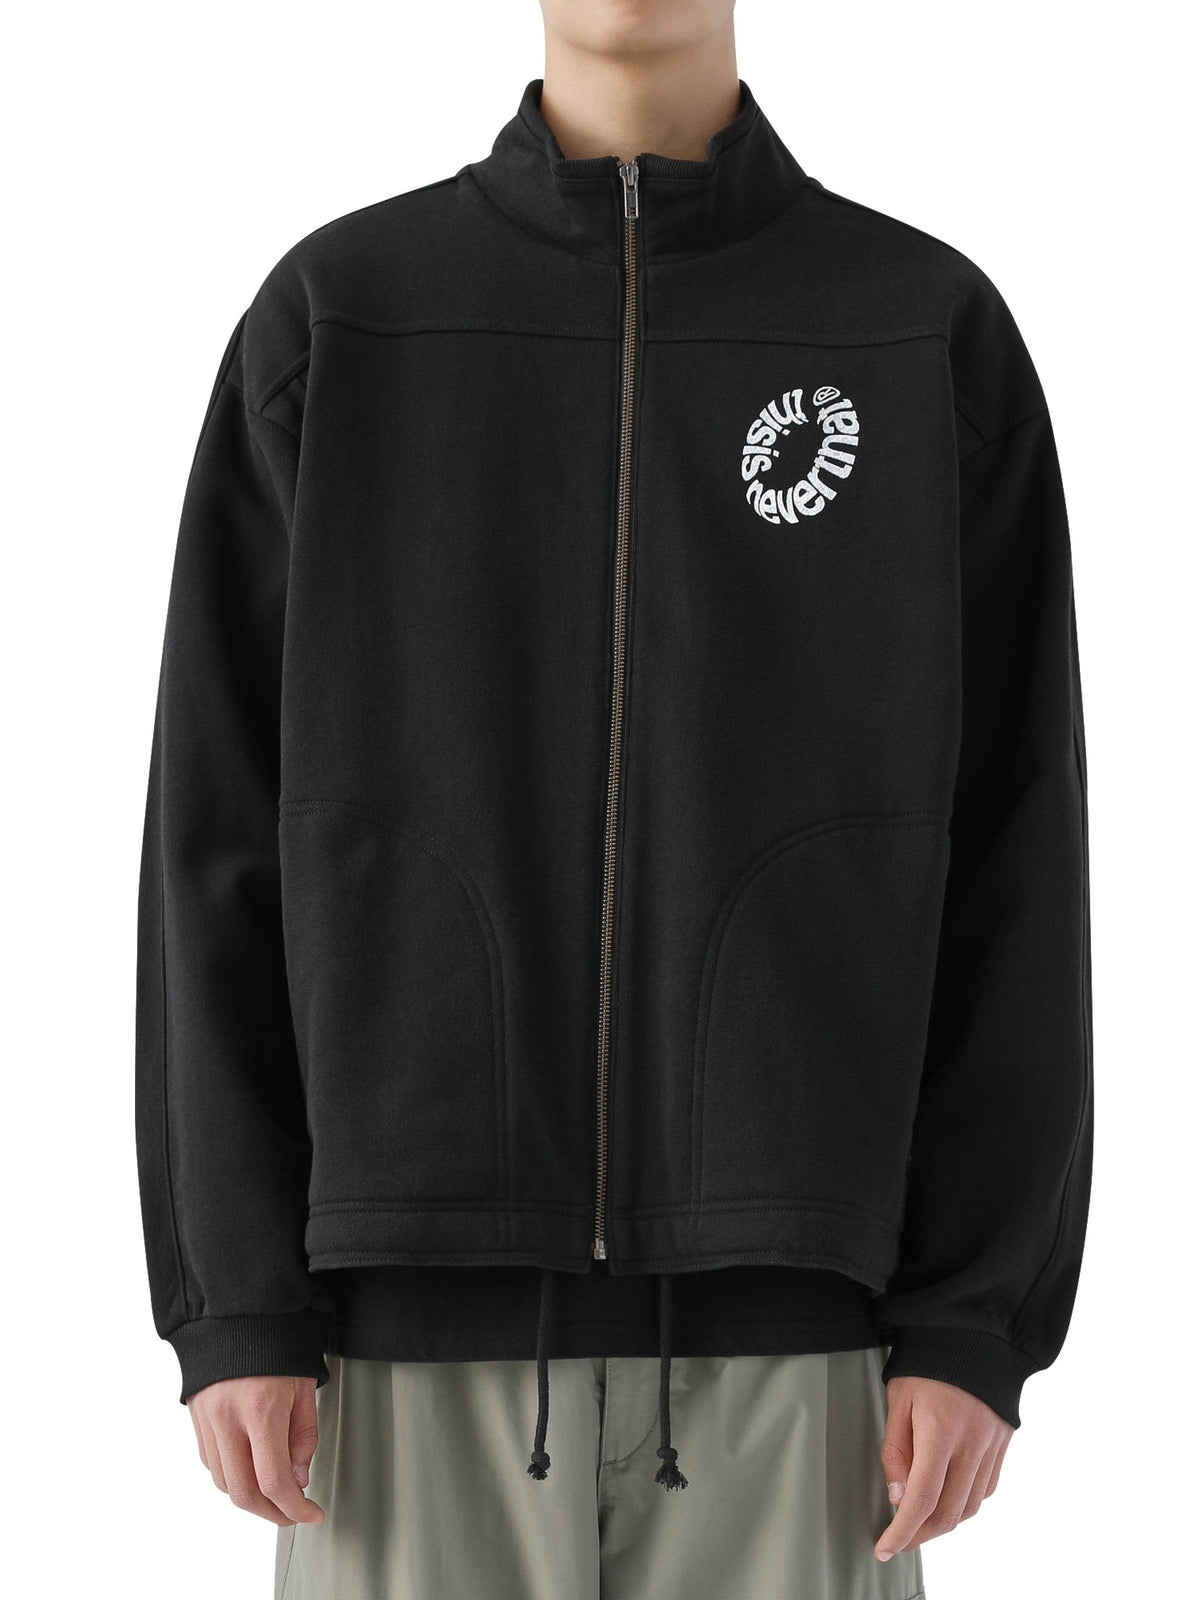 RING Sweat Jacket - thisisneverthat